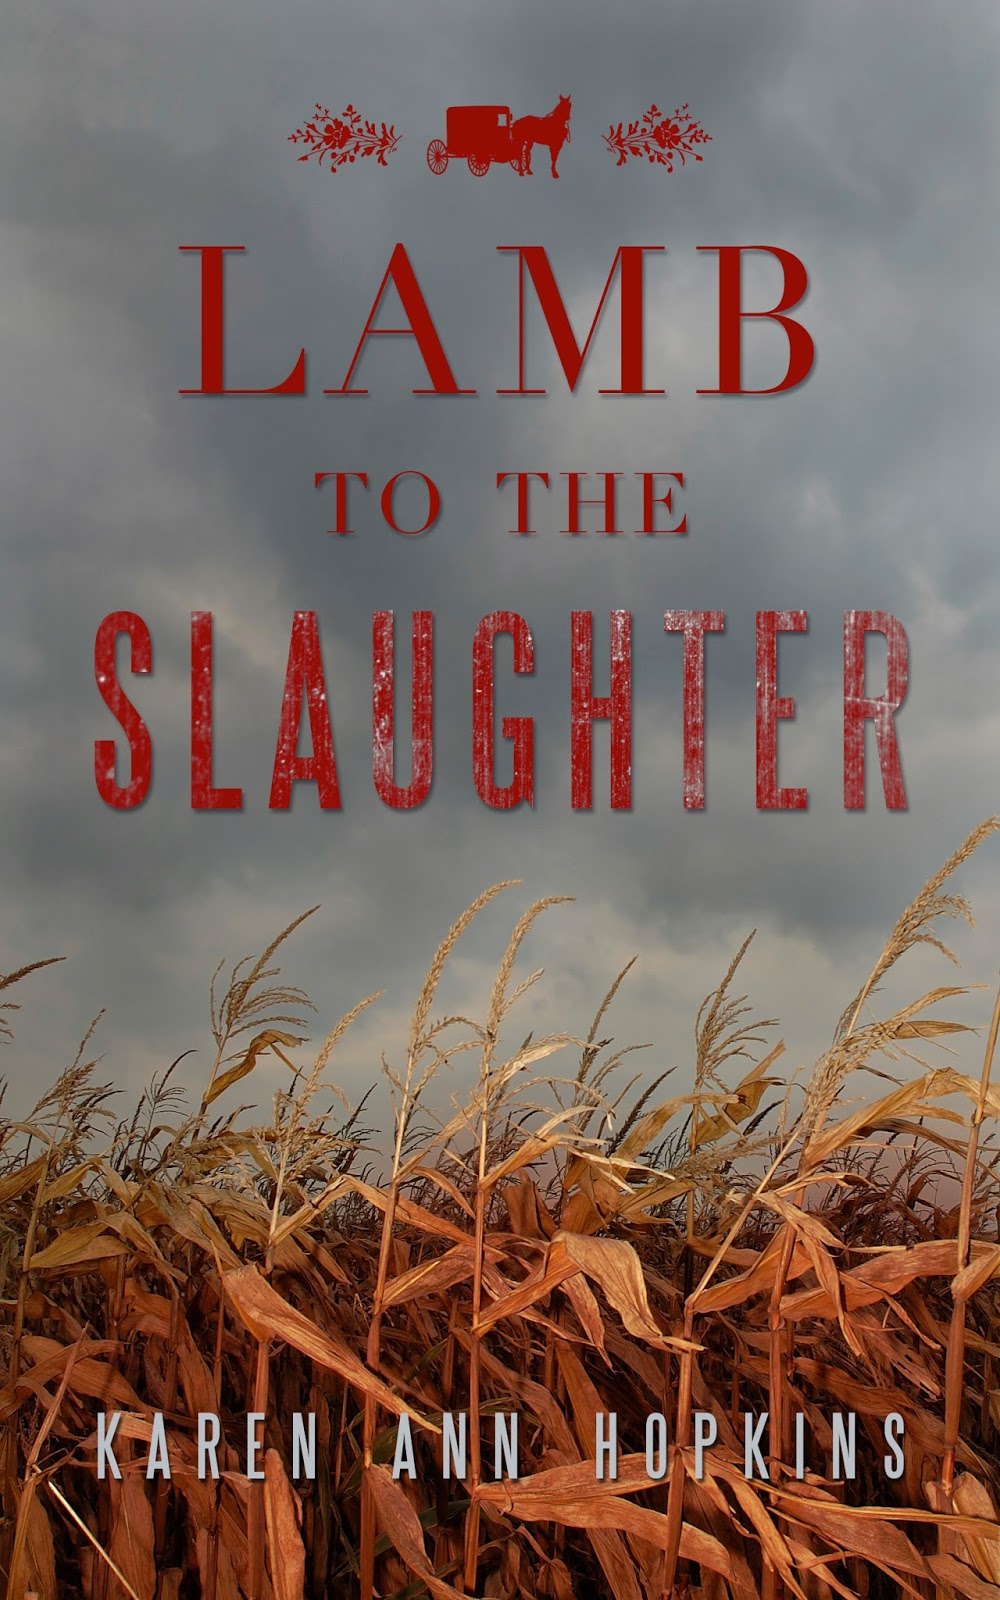 http://www.amazon.com/Lamb-Slaughter-Serenitys-Plain-Secrets-ebook/dp/B00J0LY146/ref=sr_1_1?s=digital-text&ie=UTF8&qid=1402694125&sr=1-1&keywords=lamb+to+the+slaughter+karen+ann+hopkins